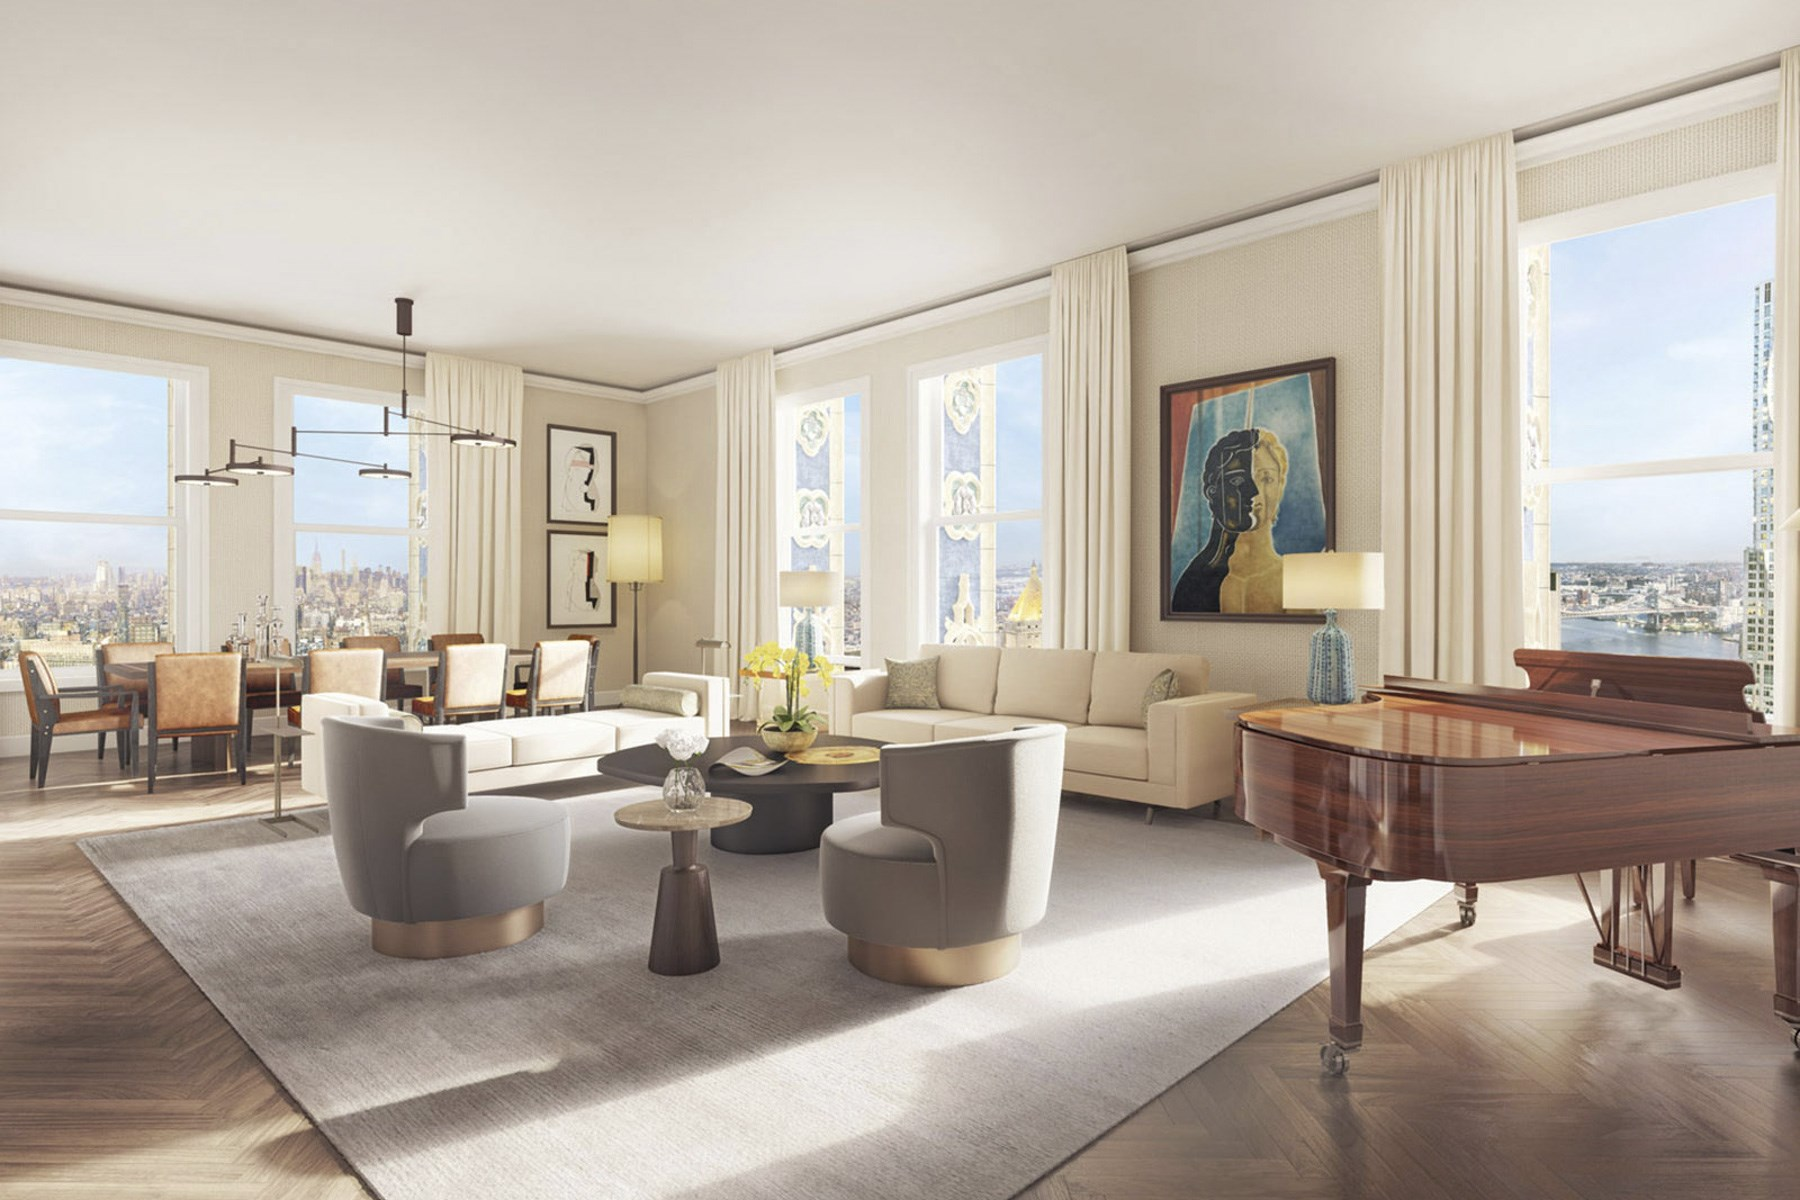 Кондоминиум для того Продажа на The Woolworth Tower Residences - 40AB 2 Park Place Apt 40AB Tribeca, New York, Нью-Йорк, 10007 Соединенные Штаты